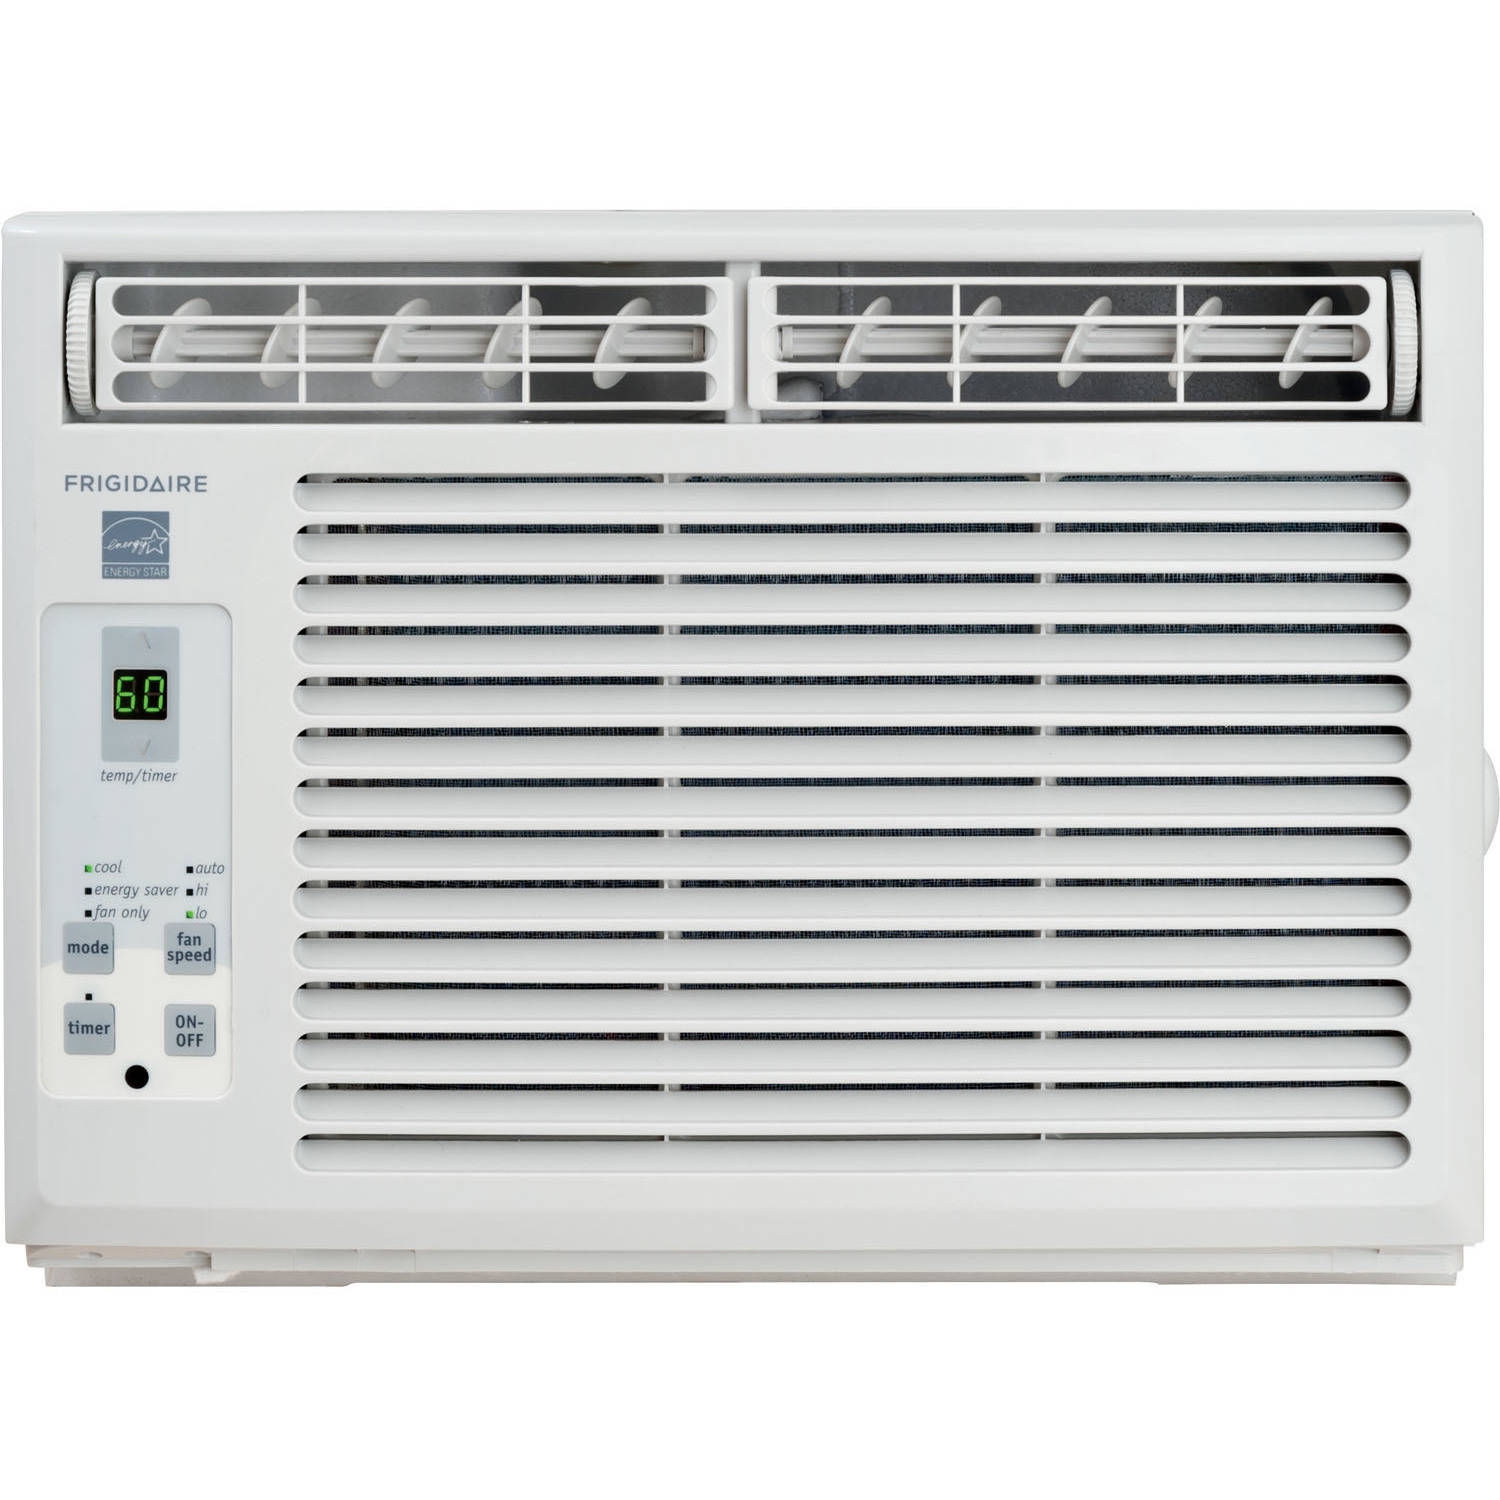 Frigidaire 5,000 BTU Window Air Conditioner with Remote, 115V, FFRE0533Q1